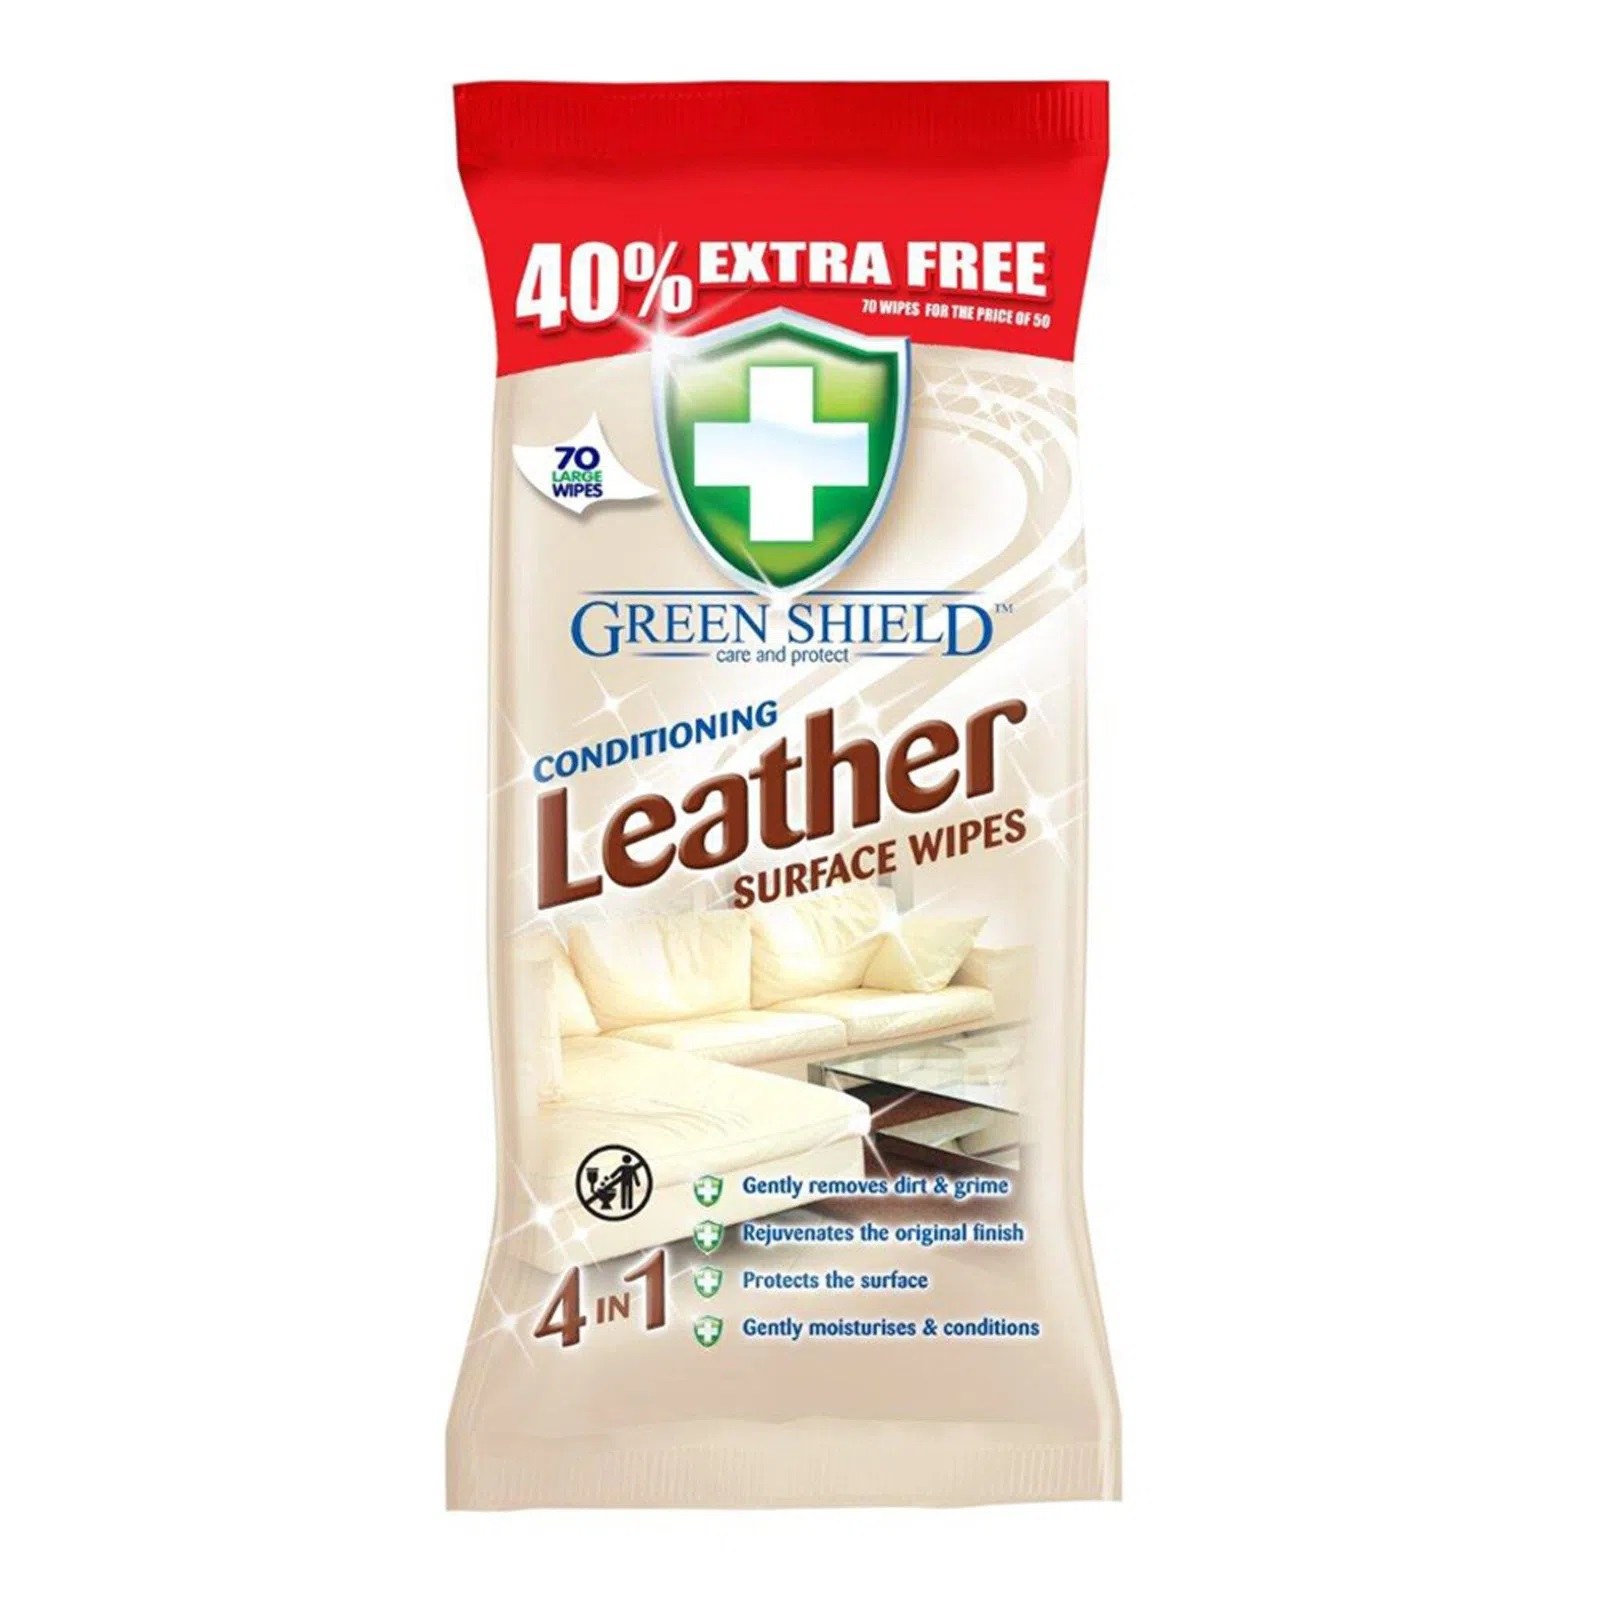 Greenshield Conditioning Leather Wipes ( 70 Wipes)